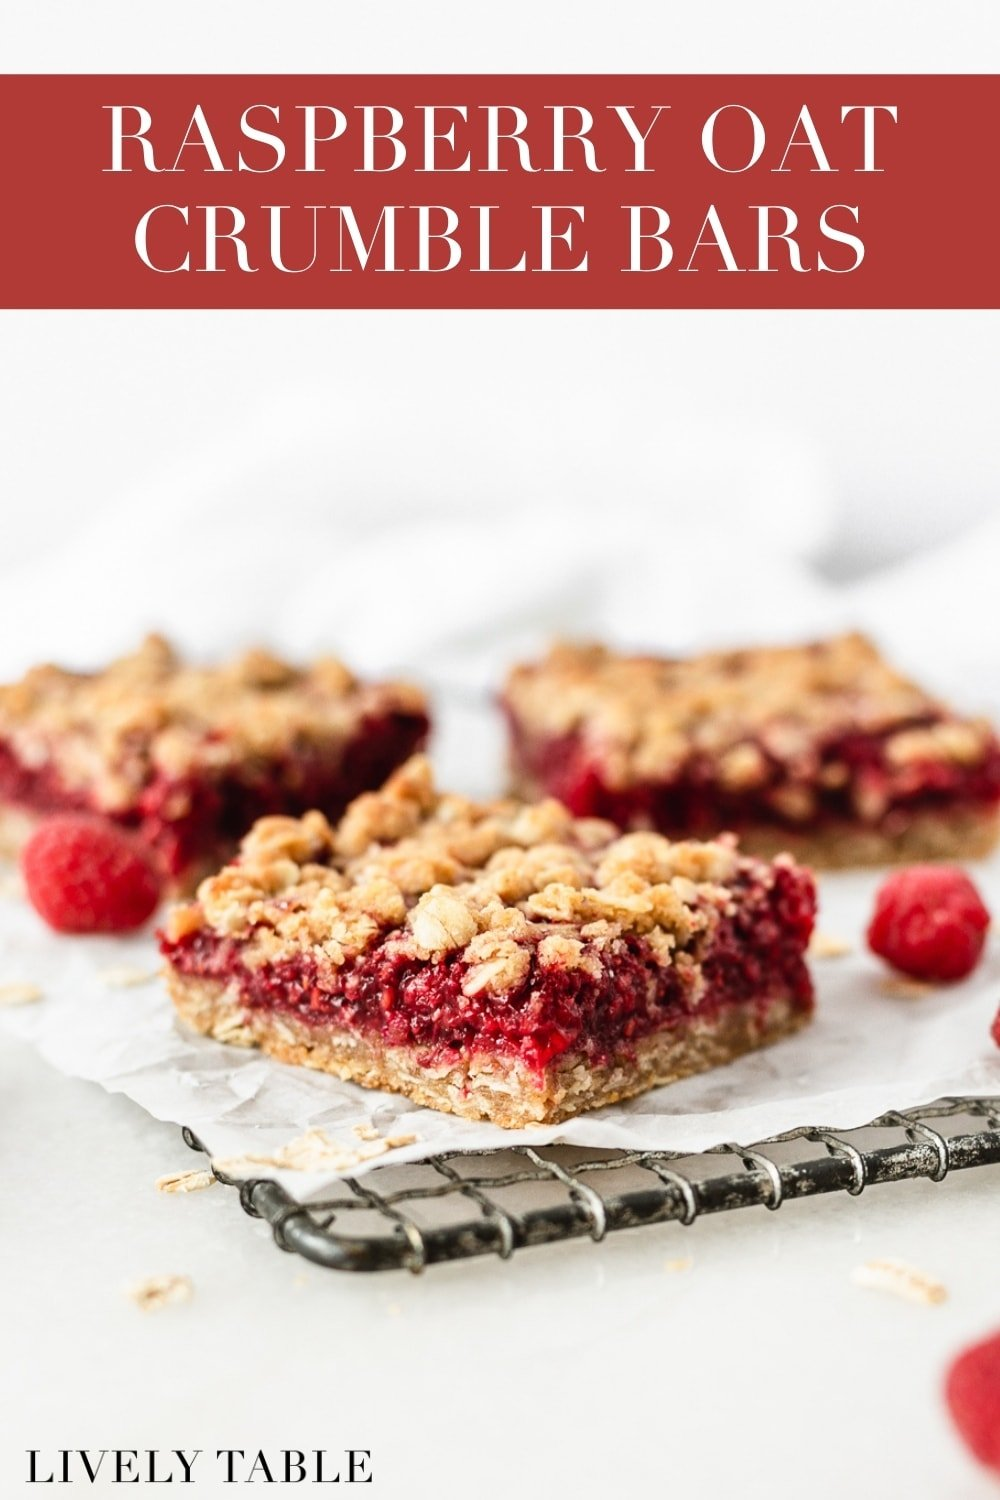 Raspberry Oat Crumble Bars made with real raspberries and whole grain oats and flour are decadent, wholesome, and the perfect simple summer dessert! #vegetarian #nutfree #dairyfree option #AD #raspberry #crumble #dessert #wholegrain #summer #recipe #bars #bobsredmill